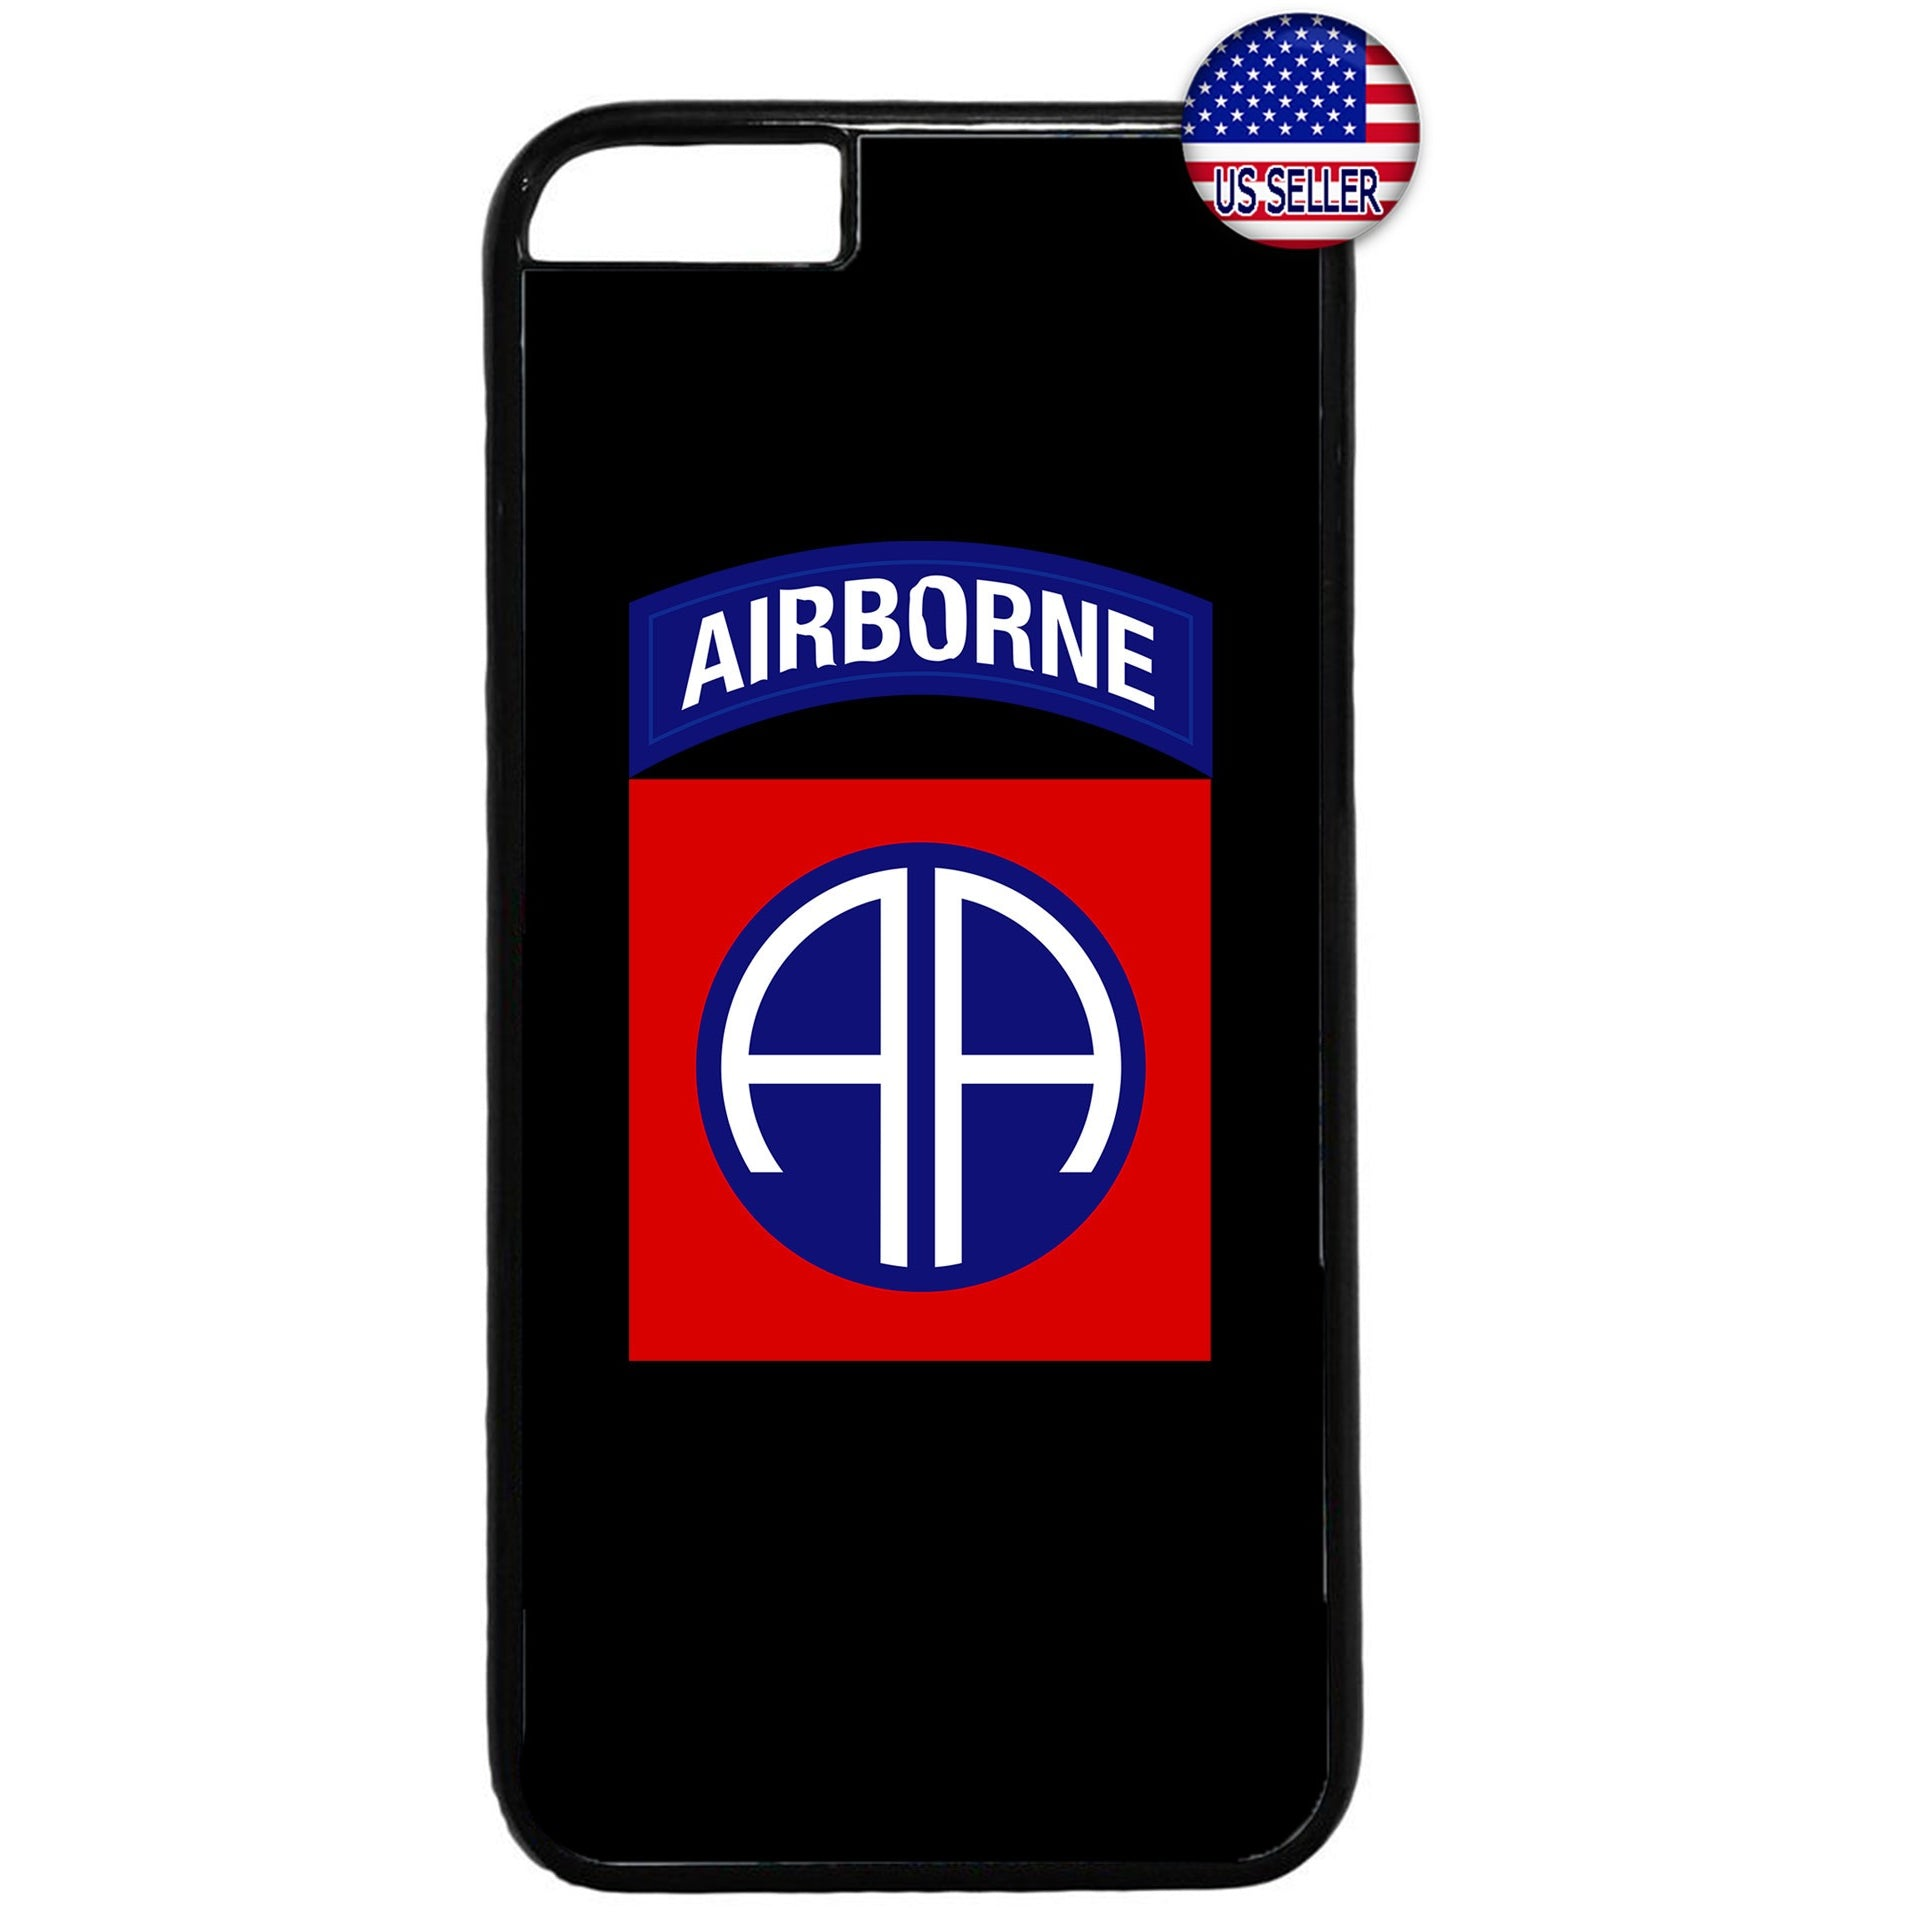 82nd US Airborne Destiny Military Force Rubber Case Cover For Iphone